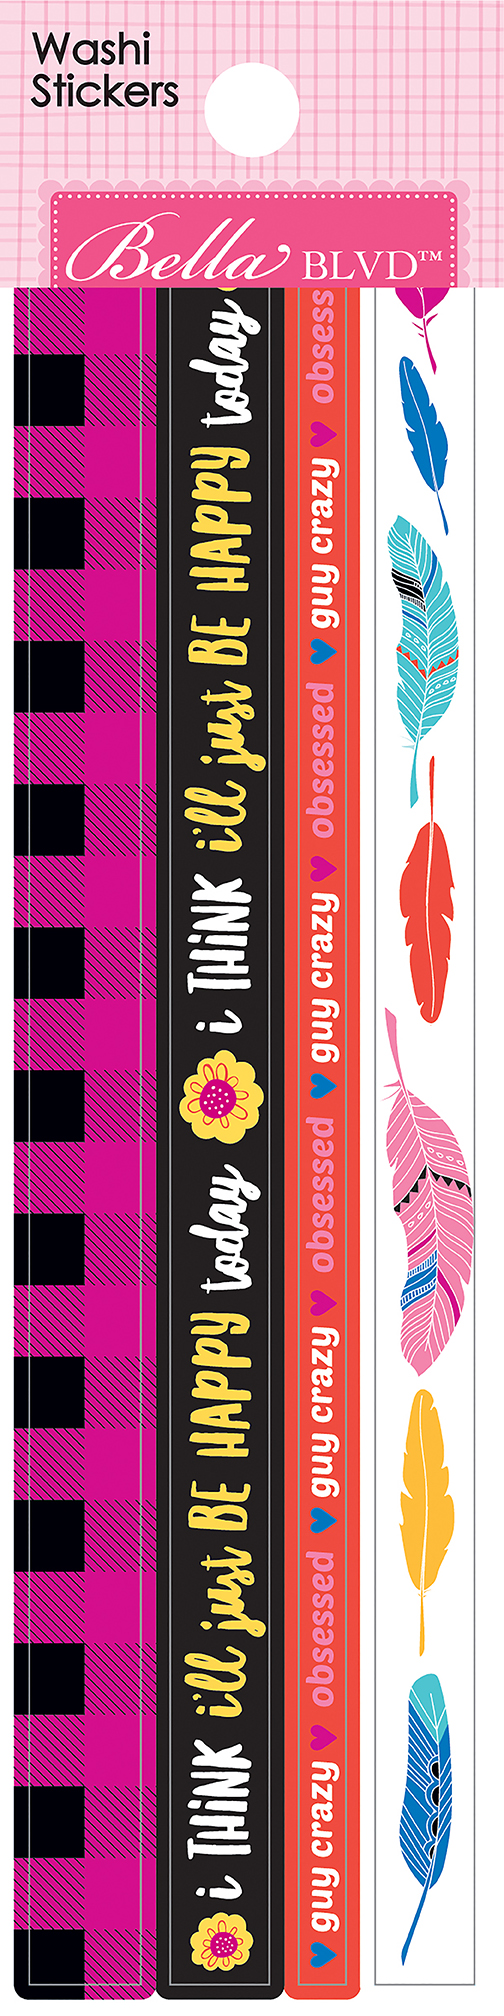 1206_WASHI_STICKERS_FRONT